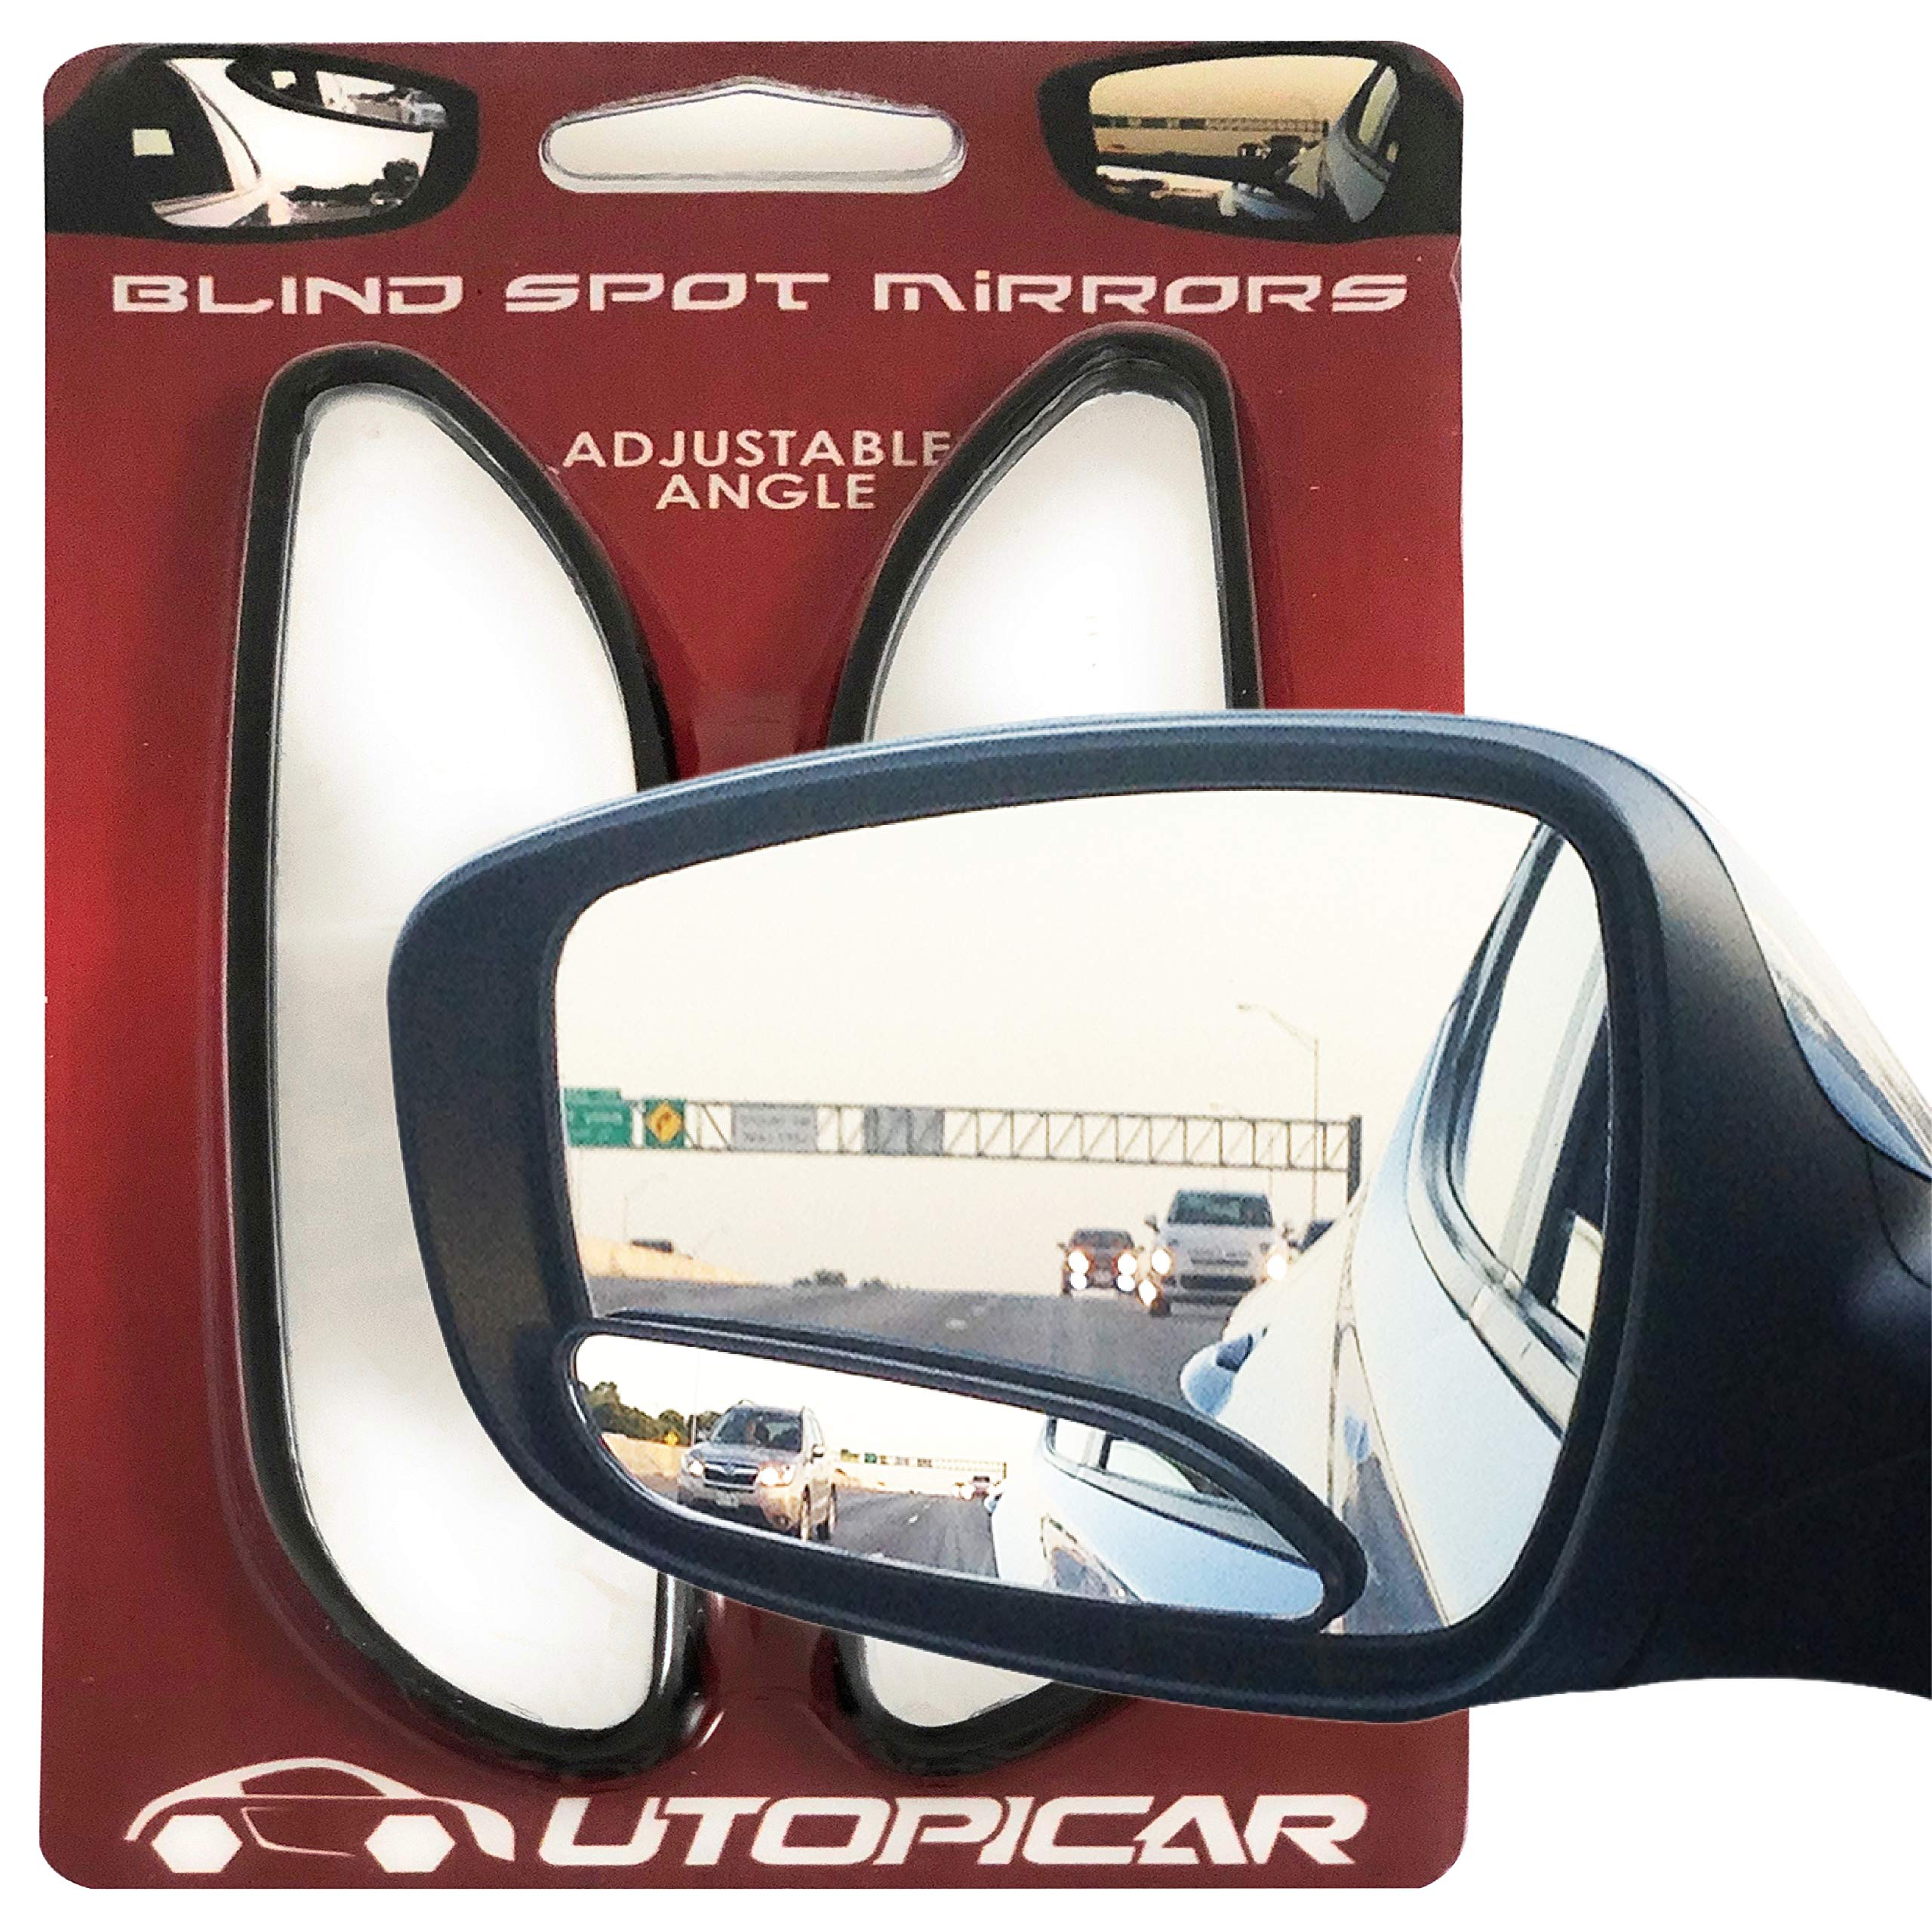 Blind Spot Mirrors Long Design Car Mirror for Blindspot by Utopicar Car Accessories | Automotive Rear View Door Mirrors | Stick-on mirror (2pack)